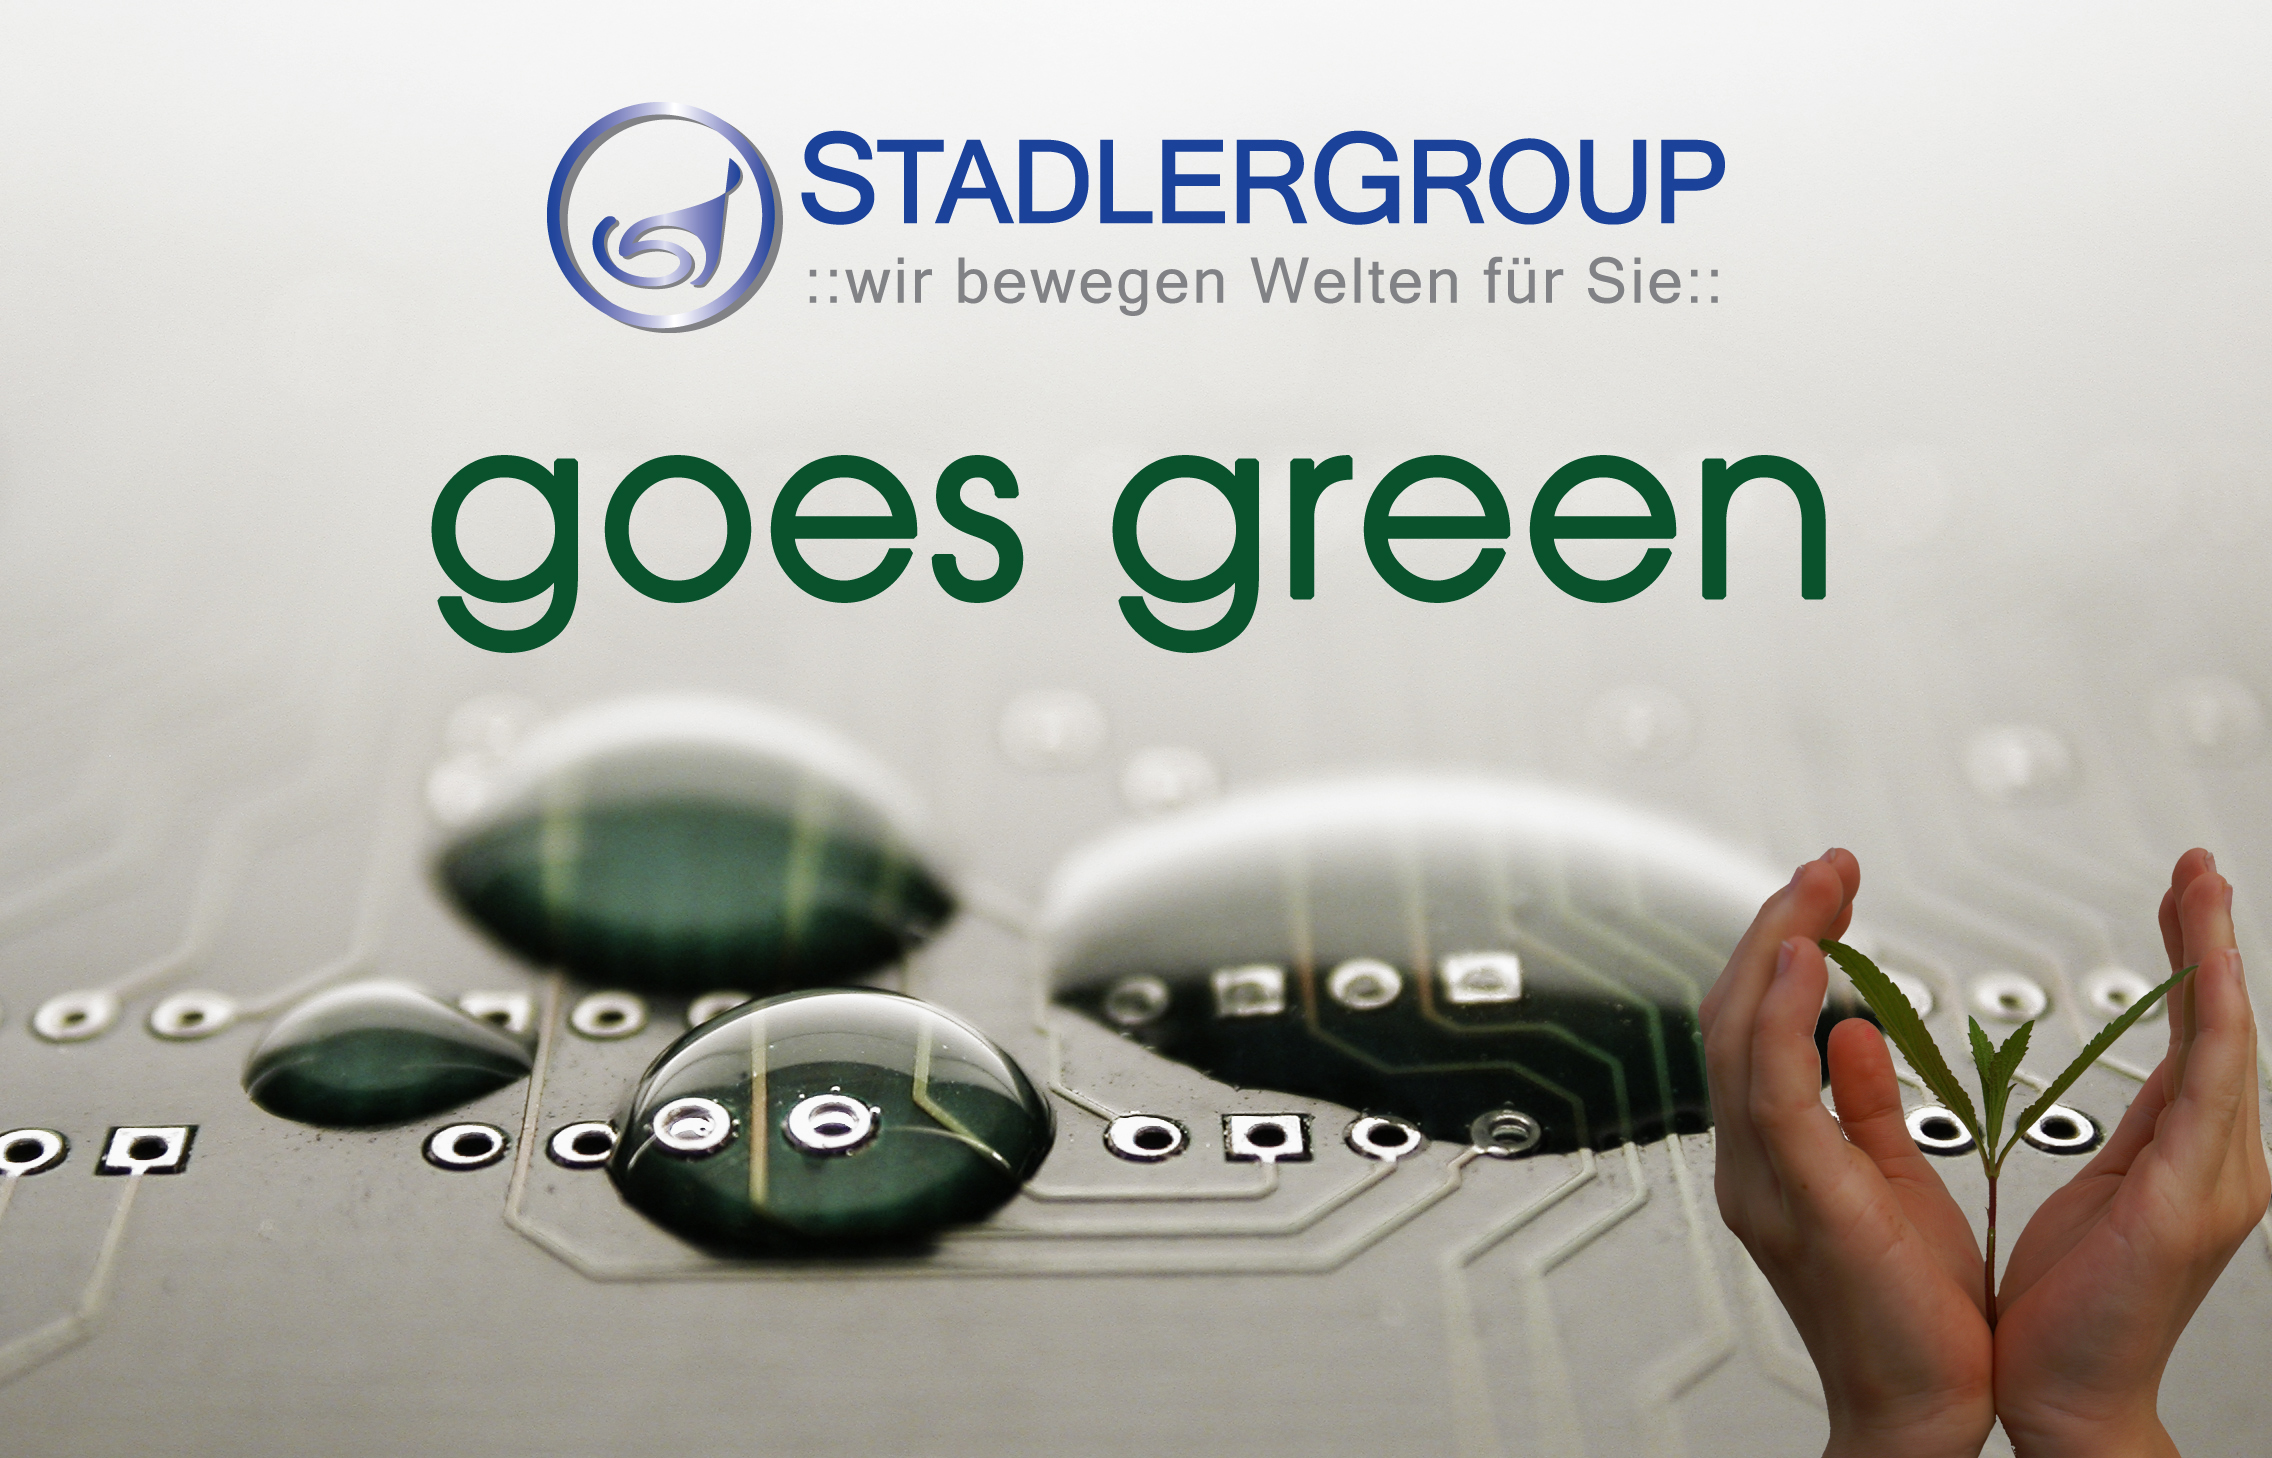 Stadlergroup goes green